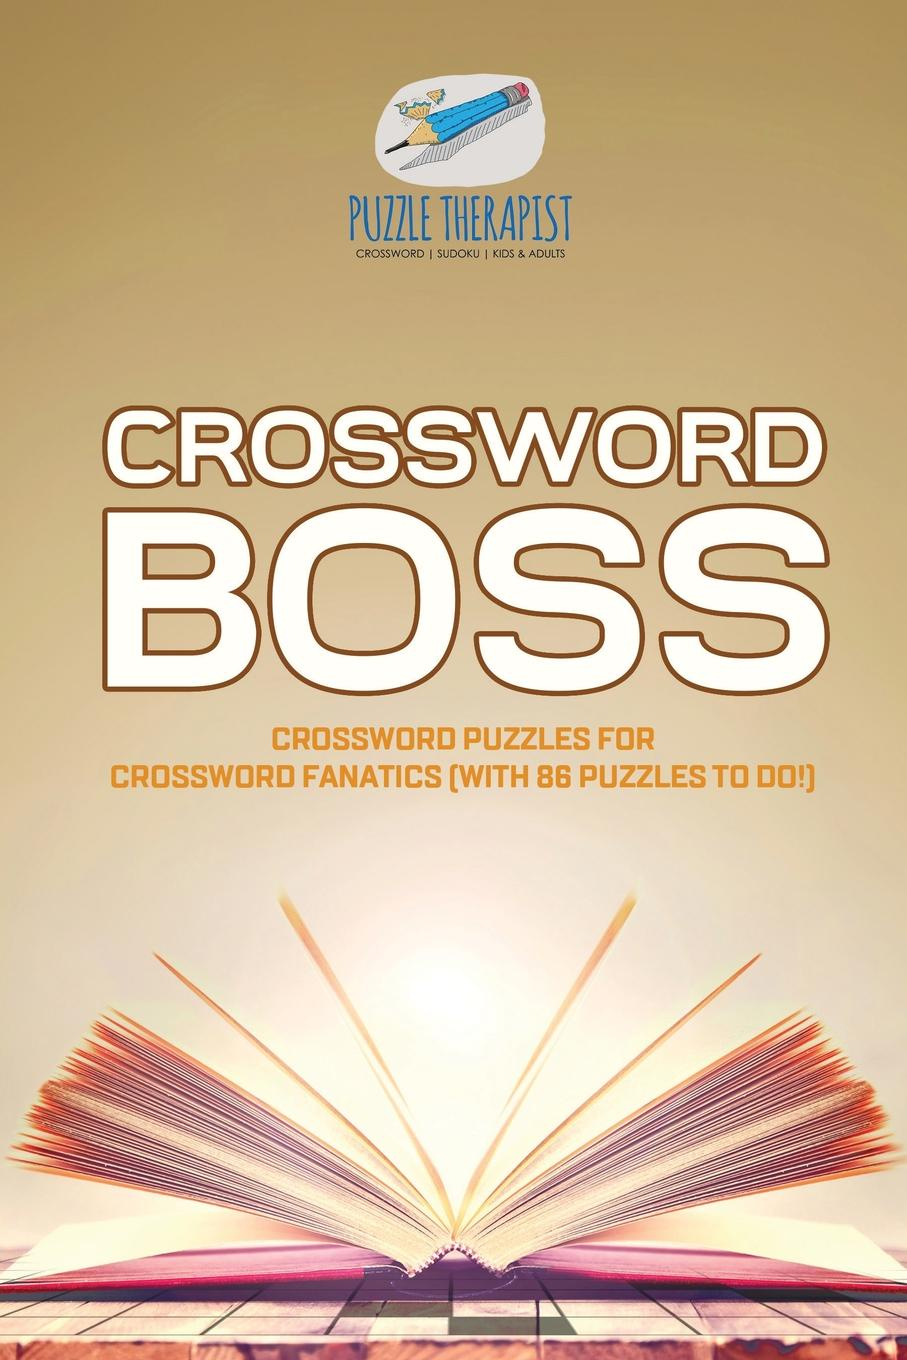 Puzzle Therapist Crossword Boss . Crossword Puzzles for Crossword Fanatics (with 86 Puzzles to Do!) fake fanatics